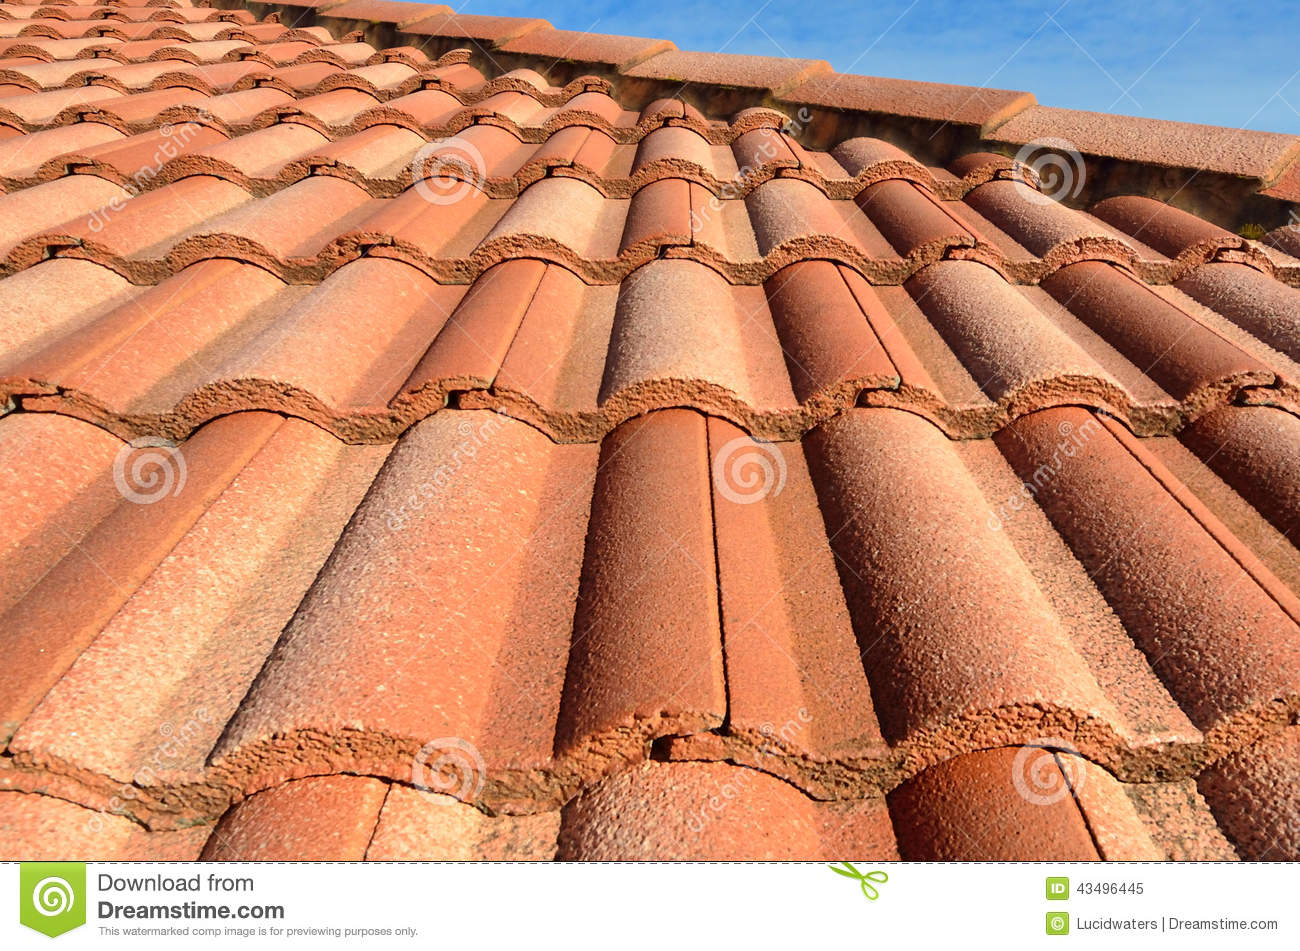 Spanish Tile Roof Stock Photo Image 43496445